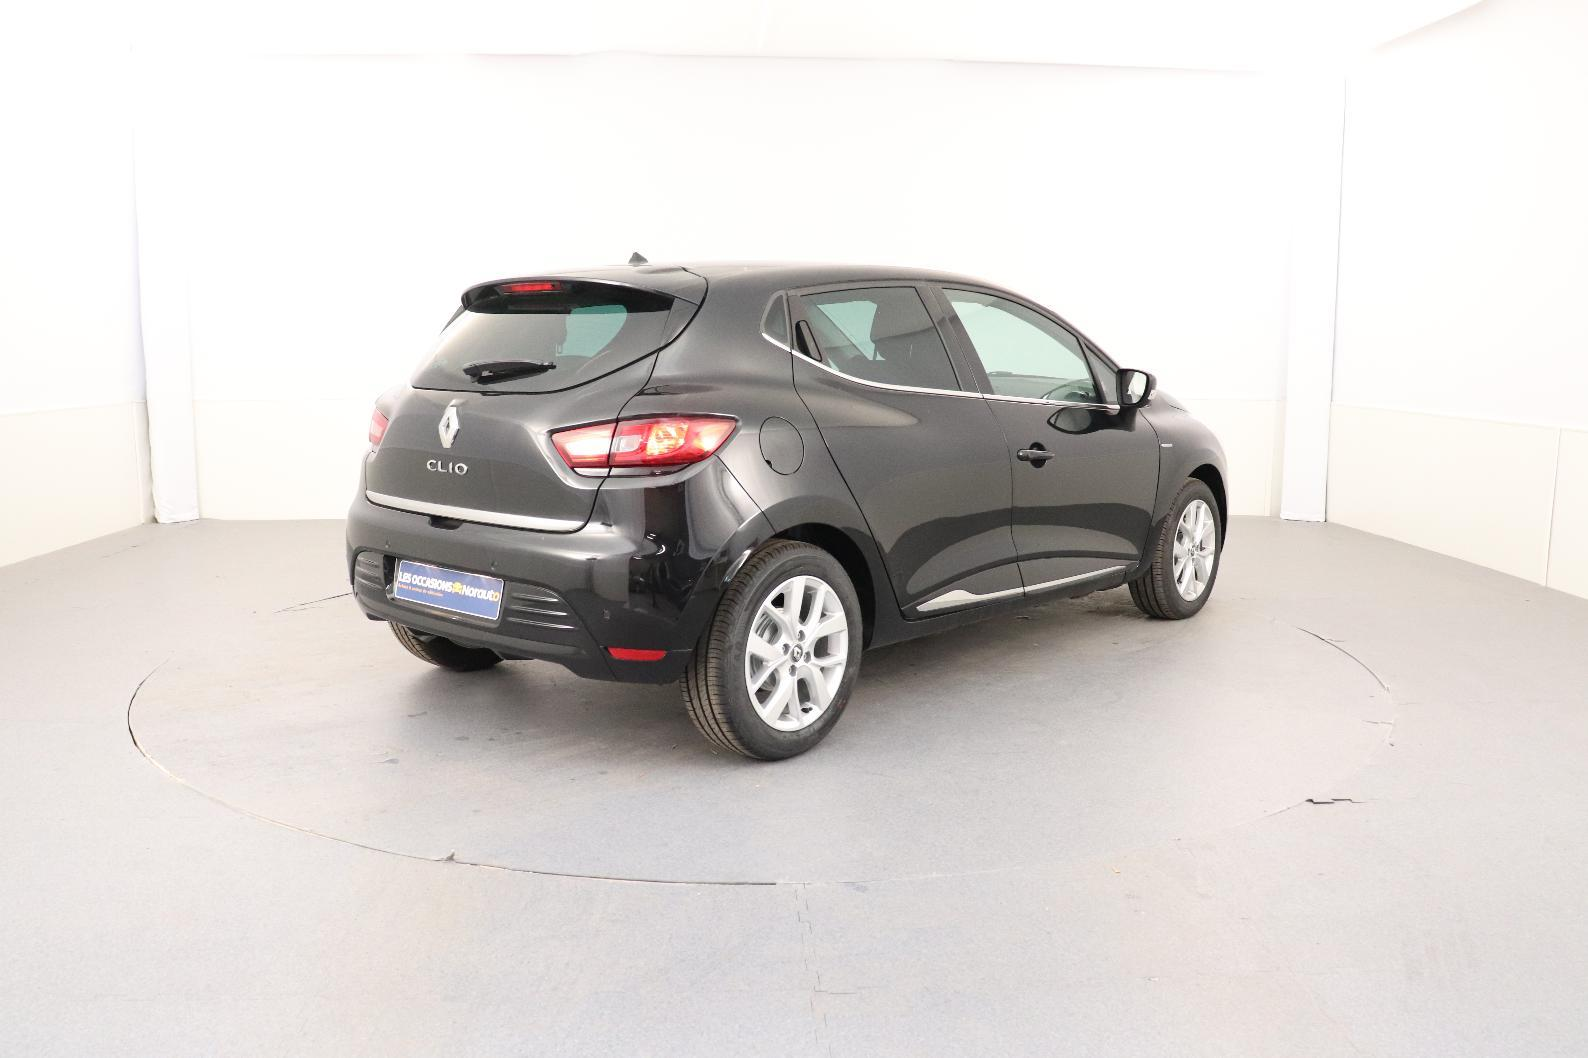 RENAULT CLIO IV Clio TCe 90 E6C Limited